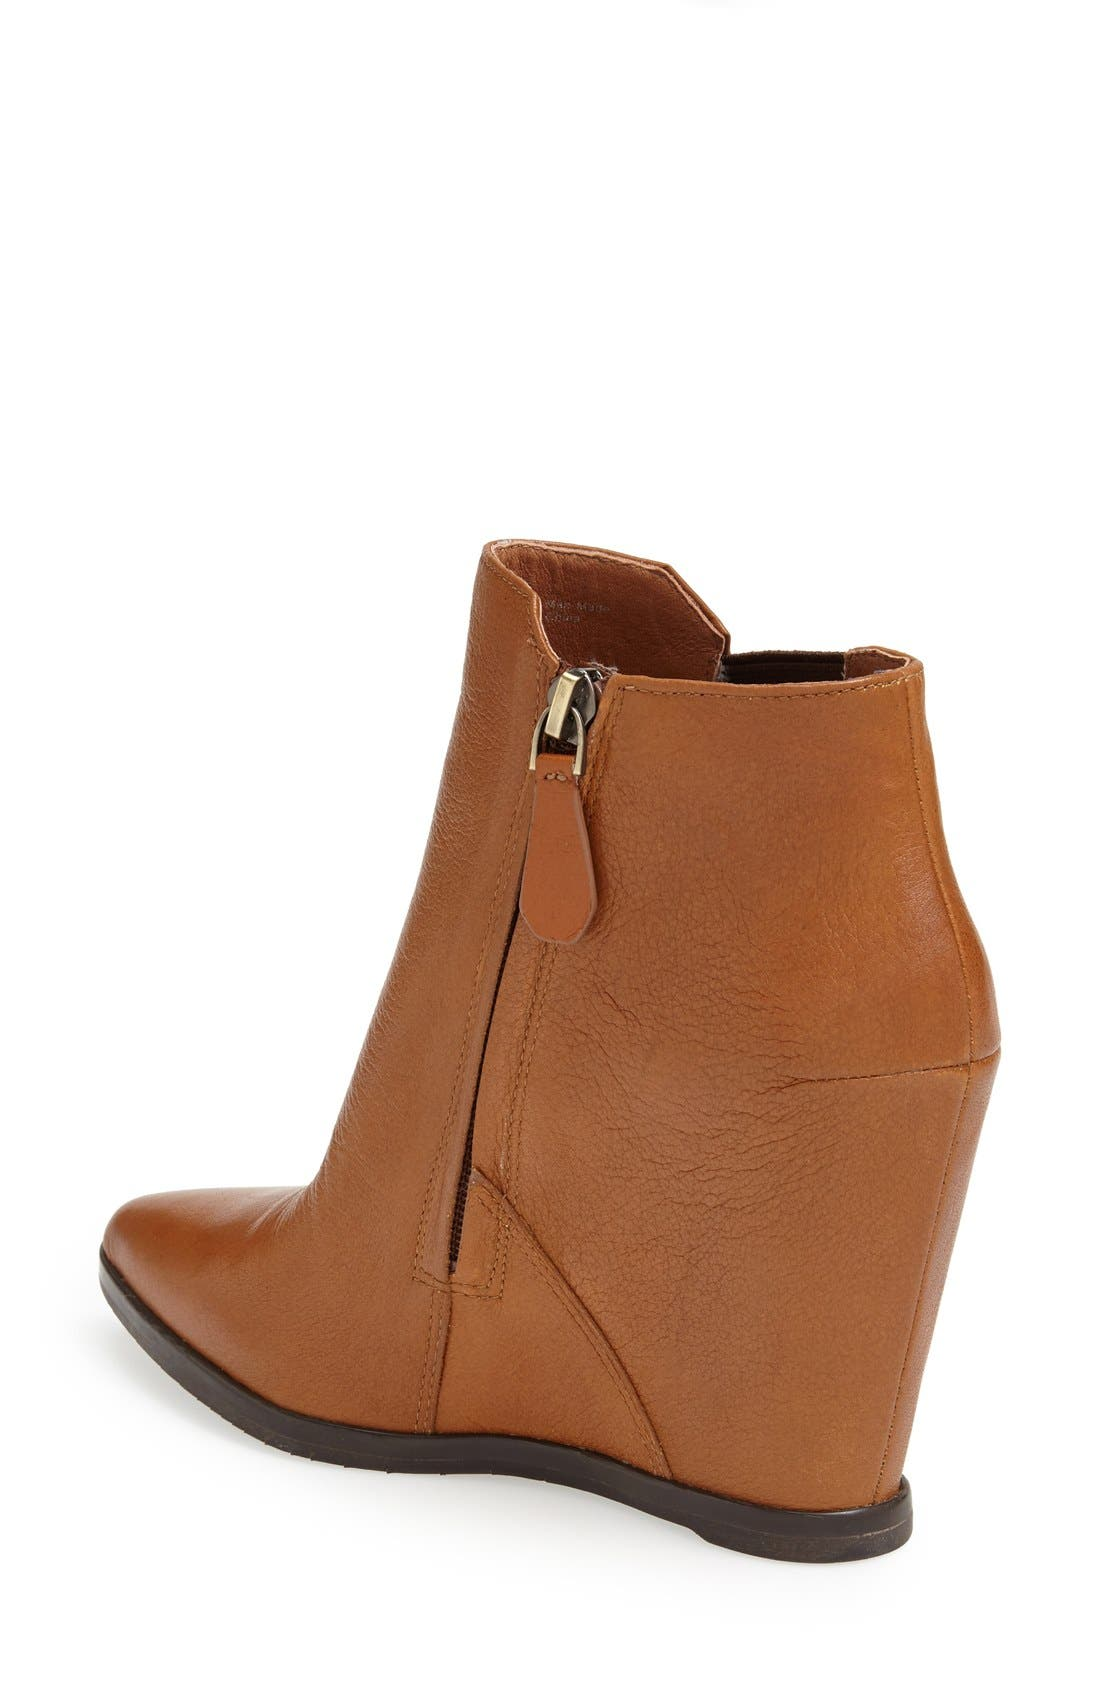 Alternate Image 2  - Kenneth Cole New York 'Sloane' Leather Wedge Bootie (Women)